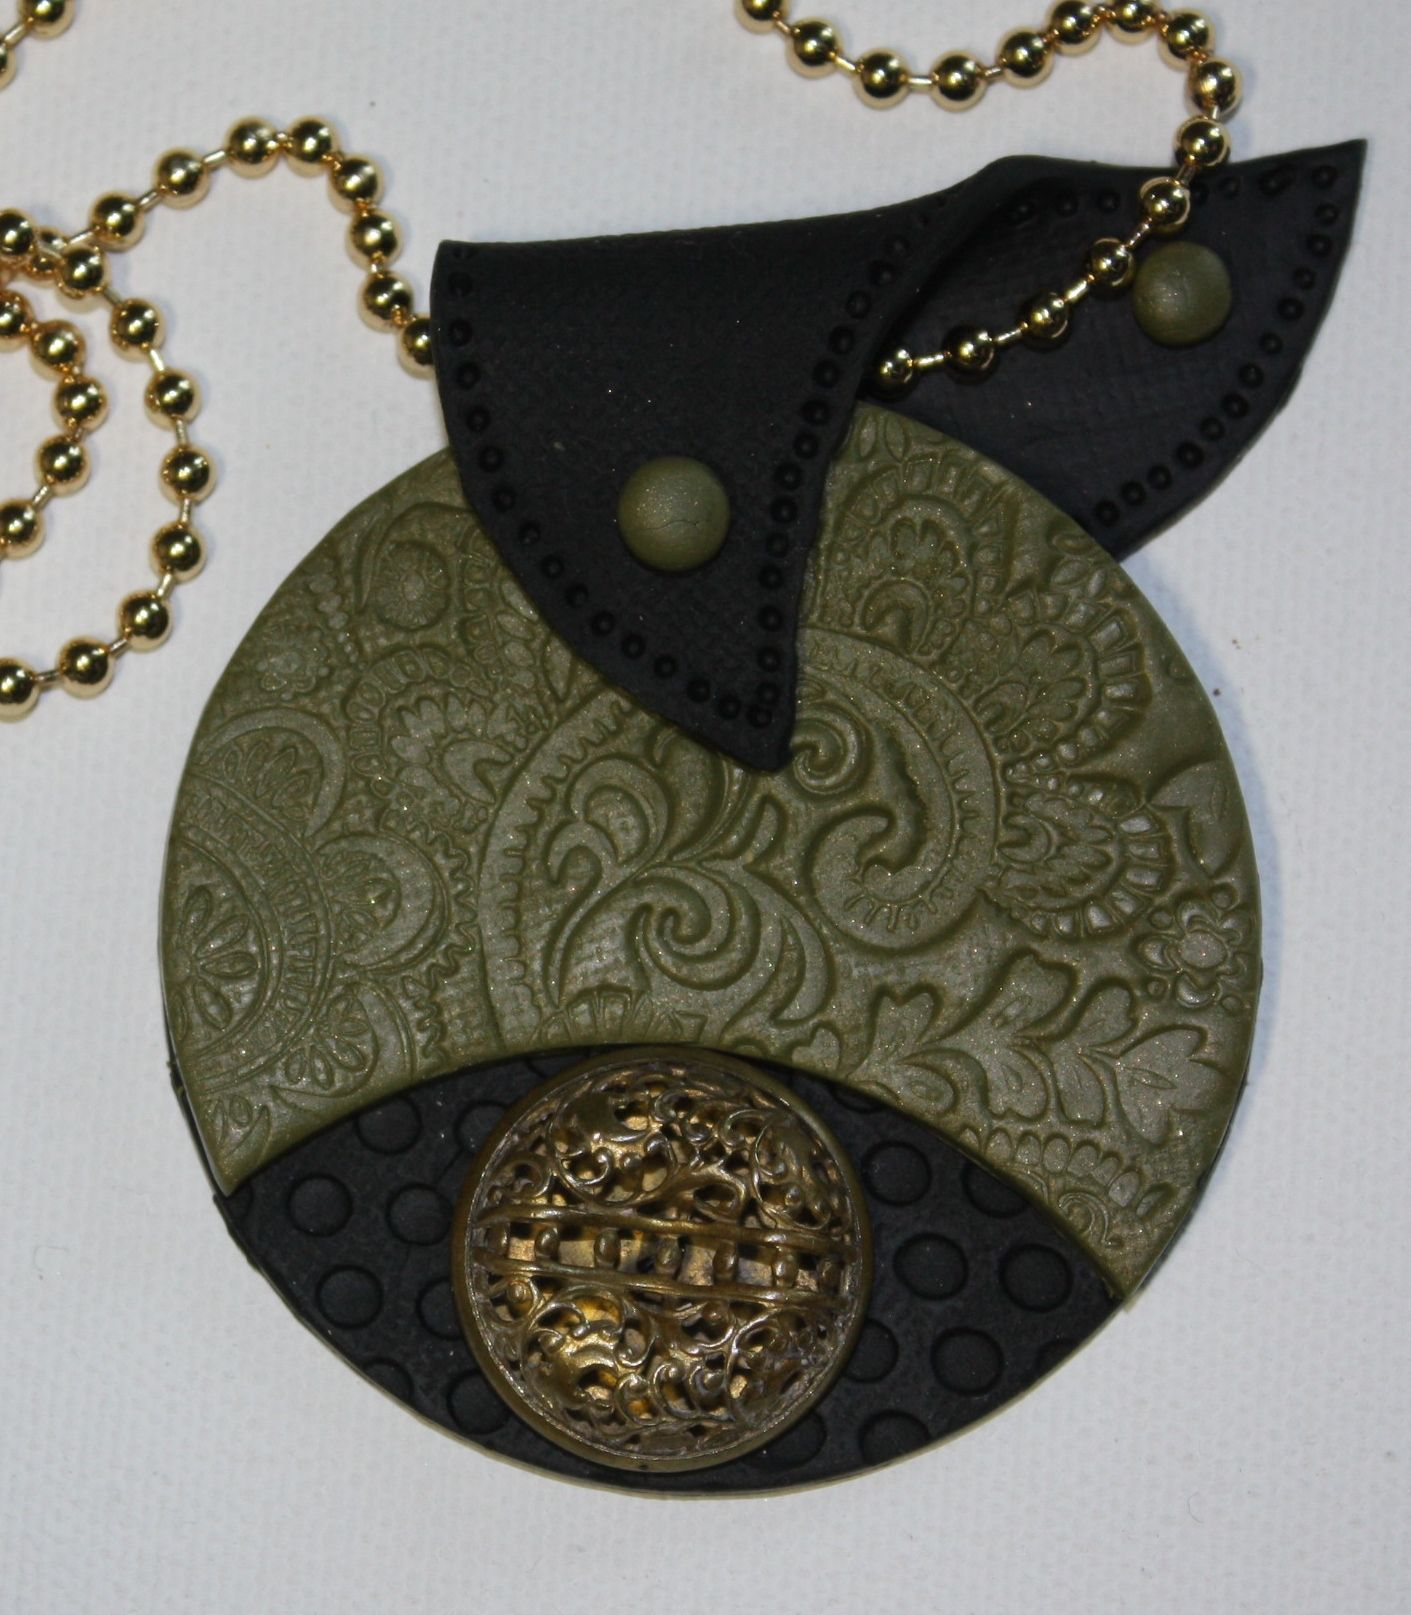 Whimsical bail, a tapestry pattern and vintage floral button combine to give this polymer clay pendant a classy look.